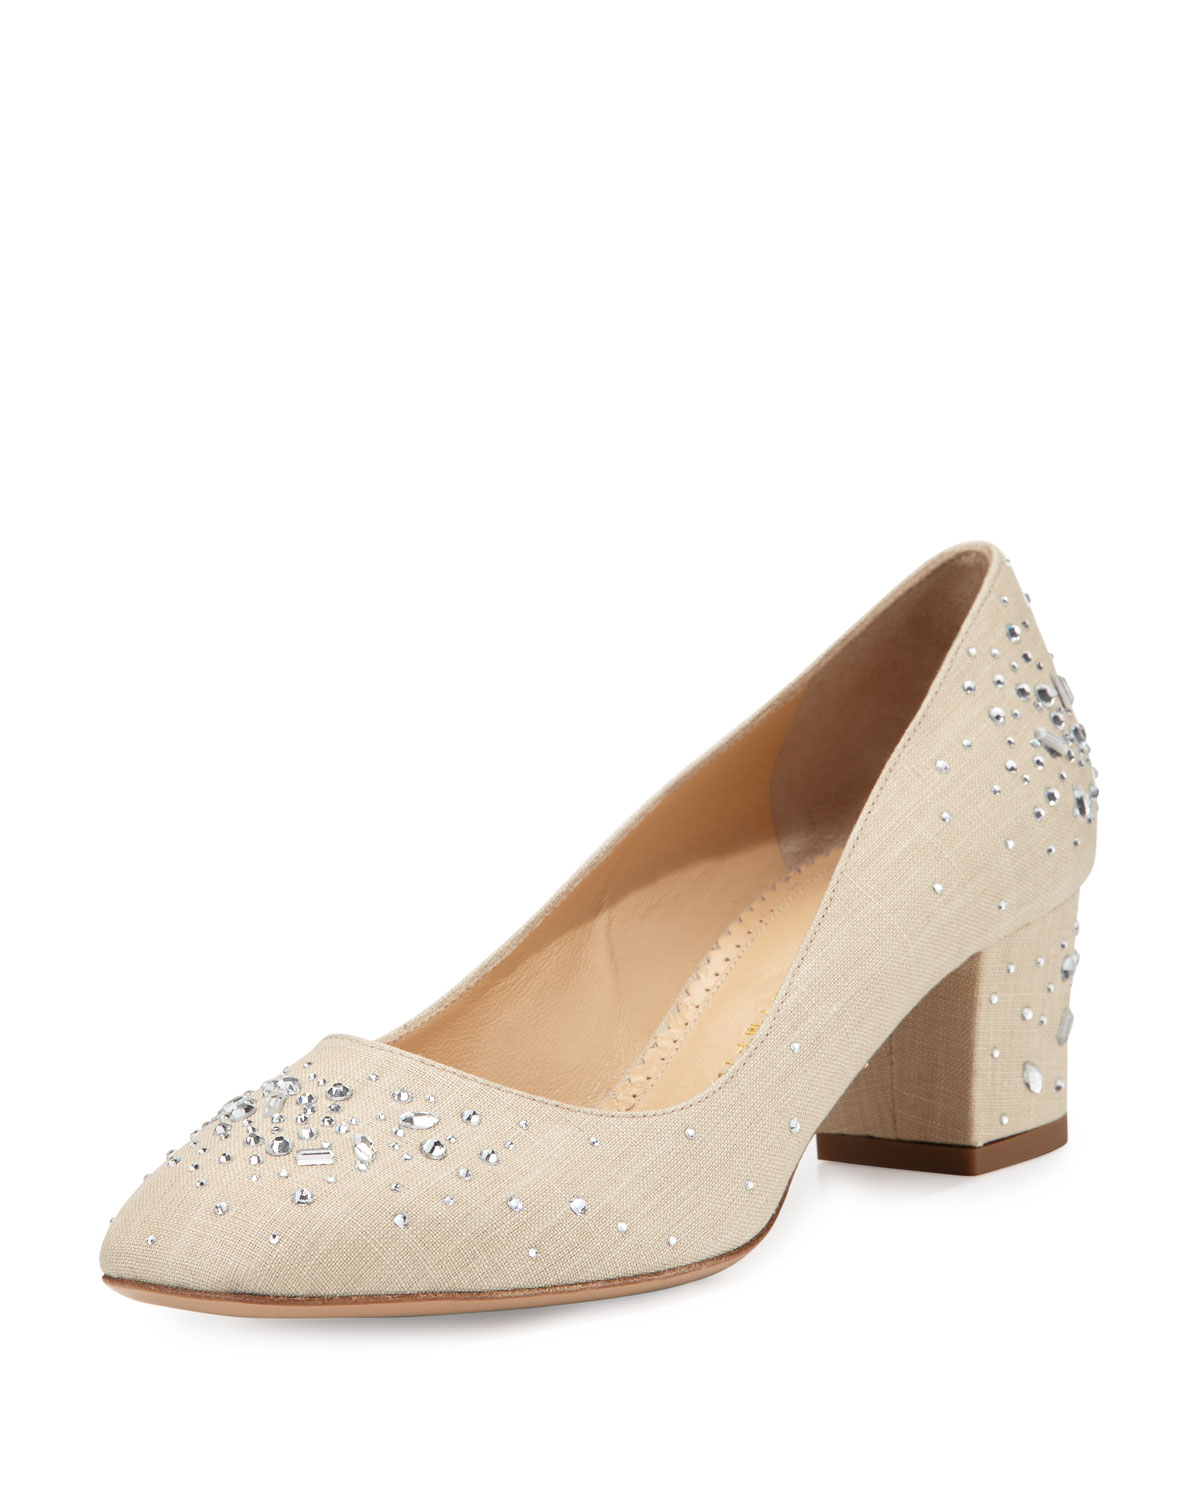 Charlotte Olympia Shoes Sale Online